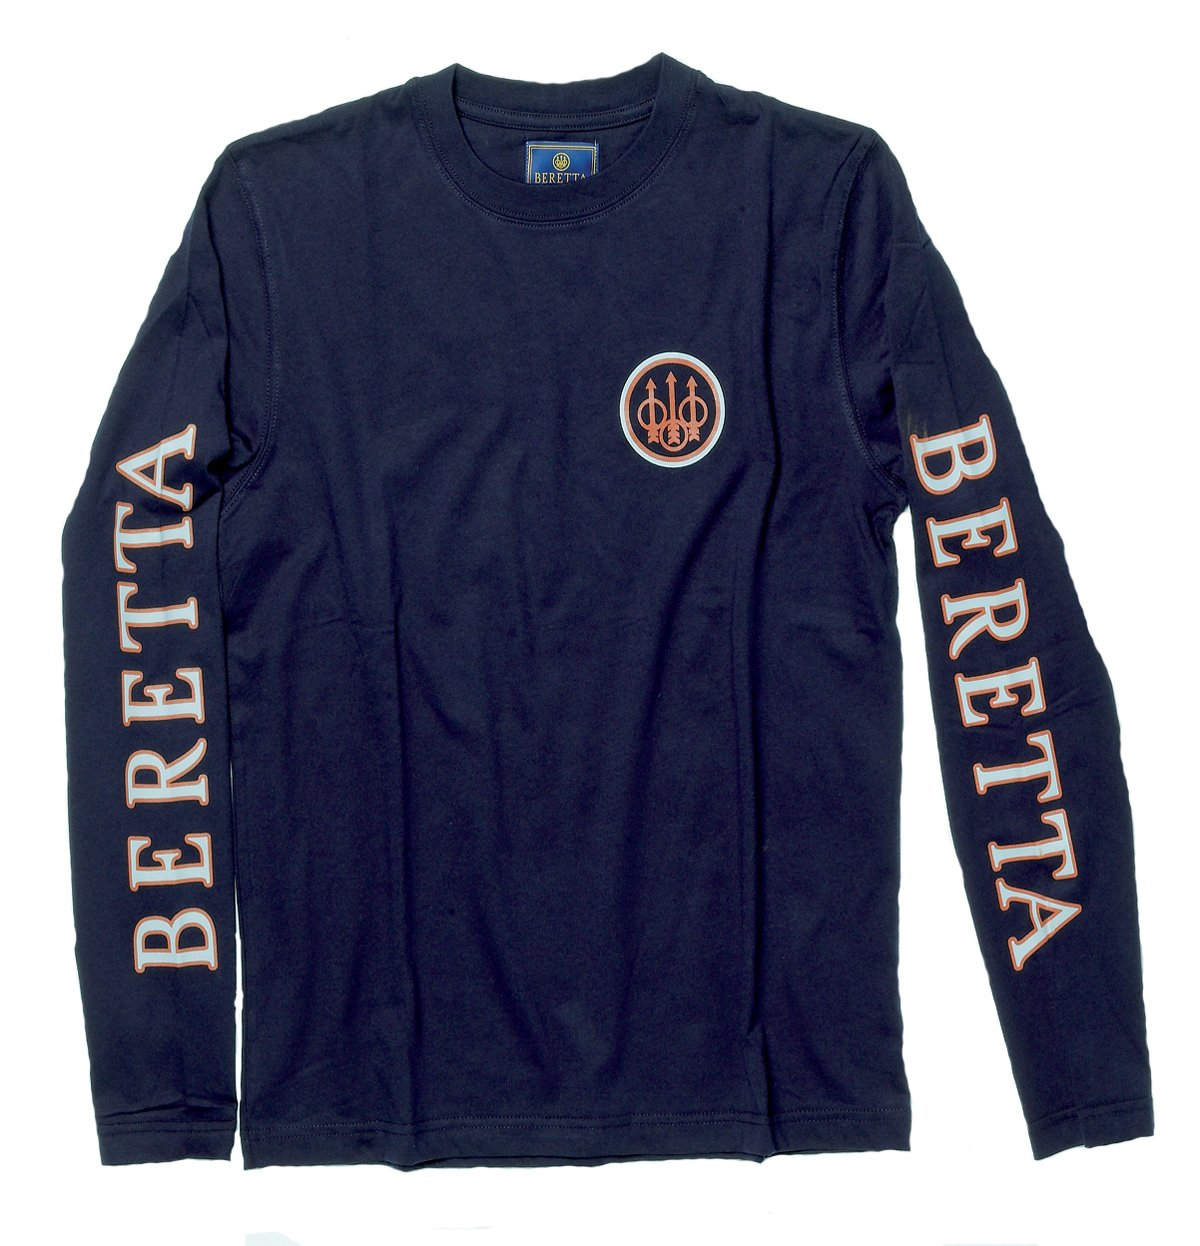 Amazon.com: Beretta Men's Long Sleeve Shooting T-Shirt: Sports ...